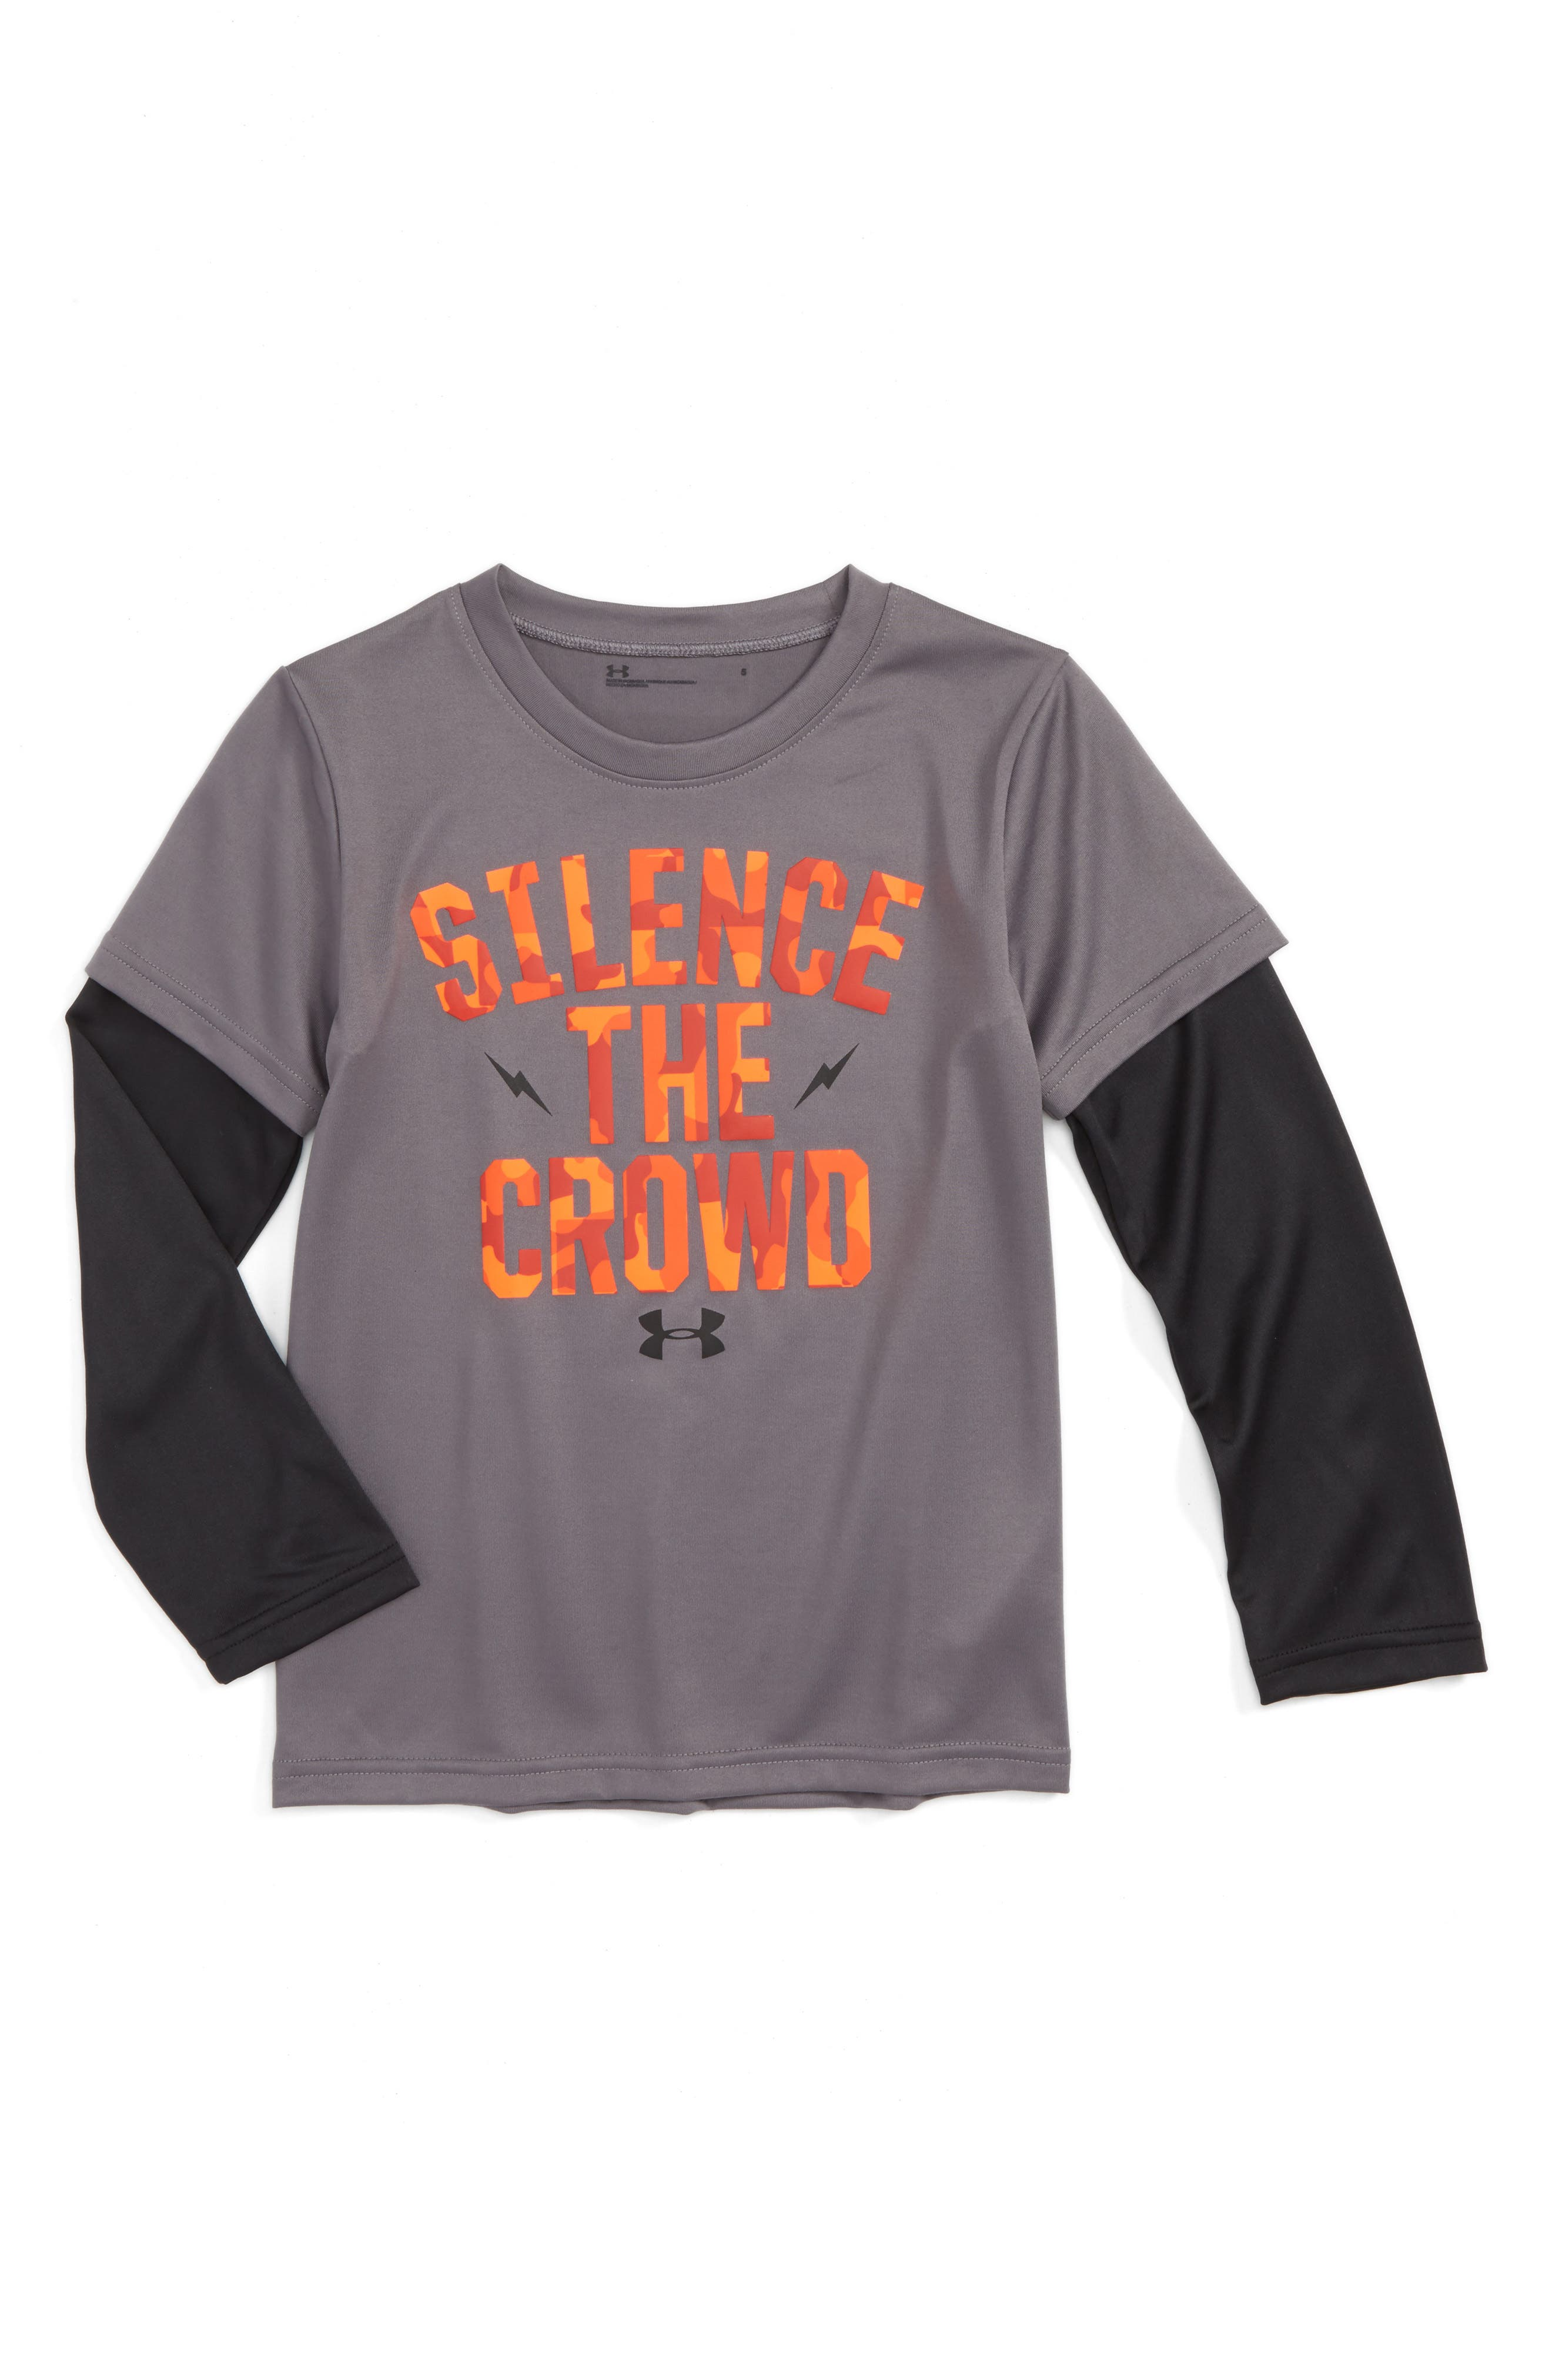 UNDER ARMOUR Silence The Crowd Graphic T-Shirt